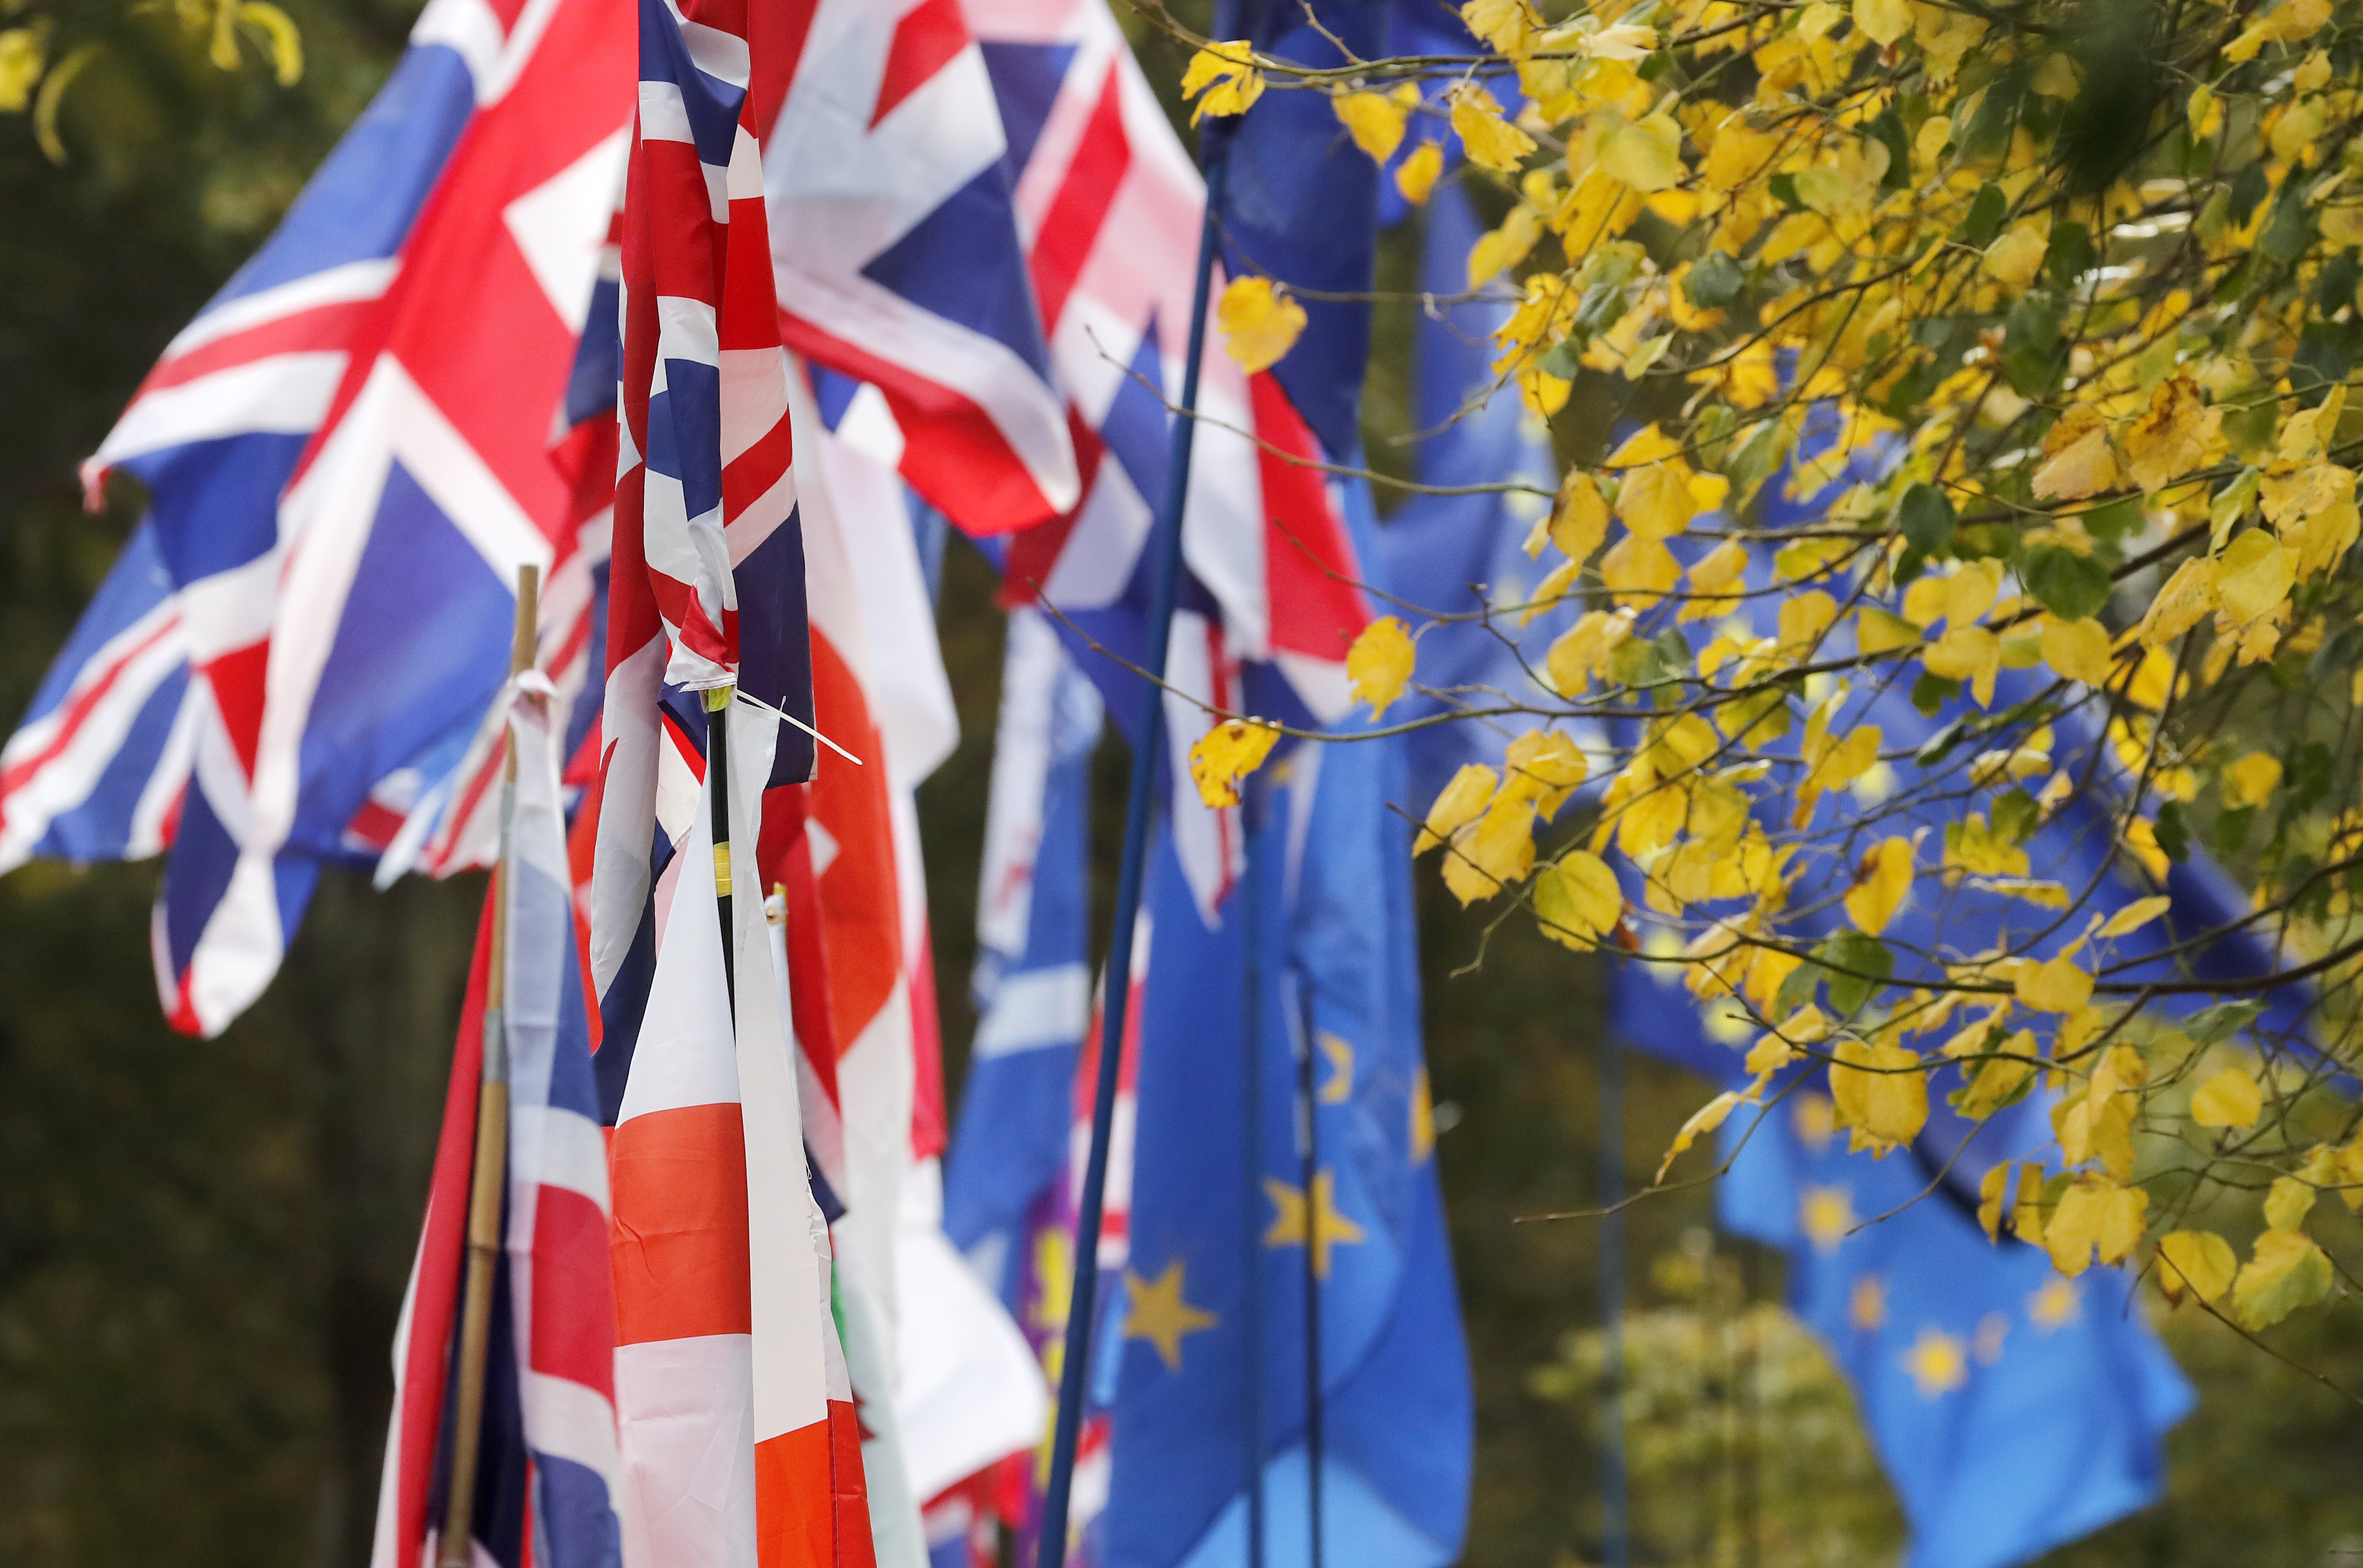 Flags fly outside parliament in London